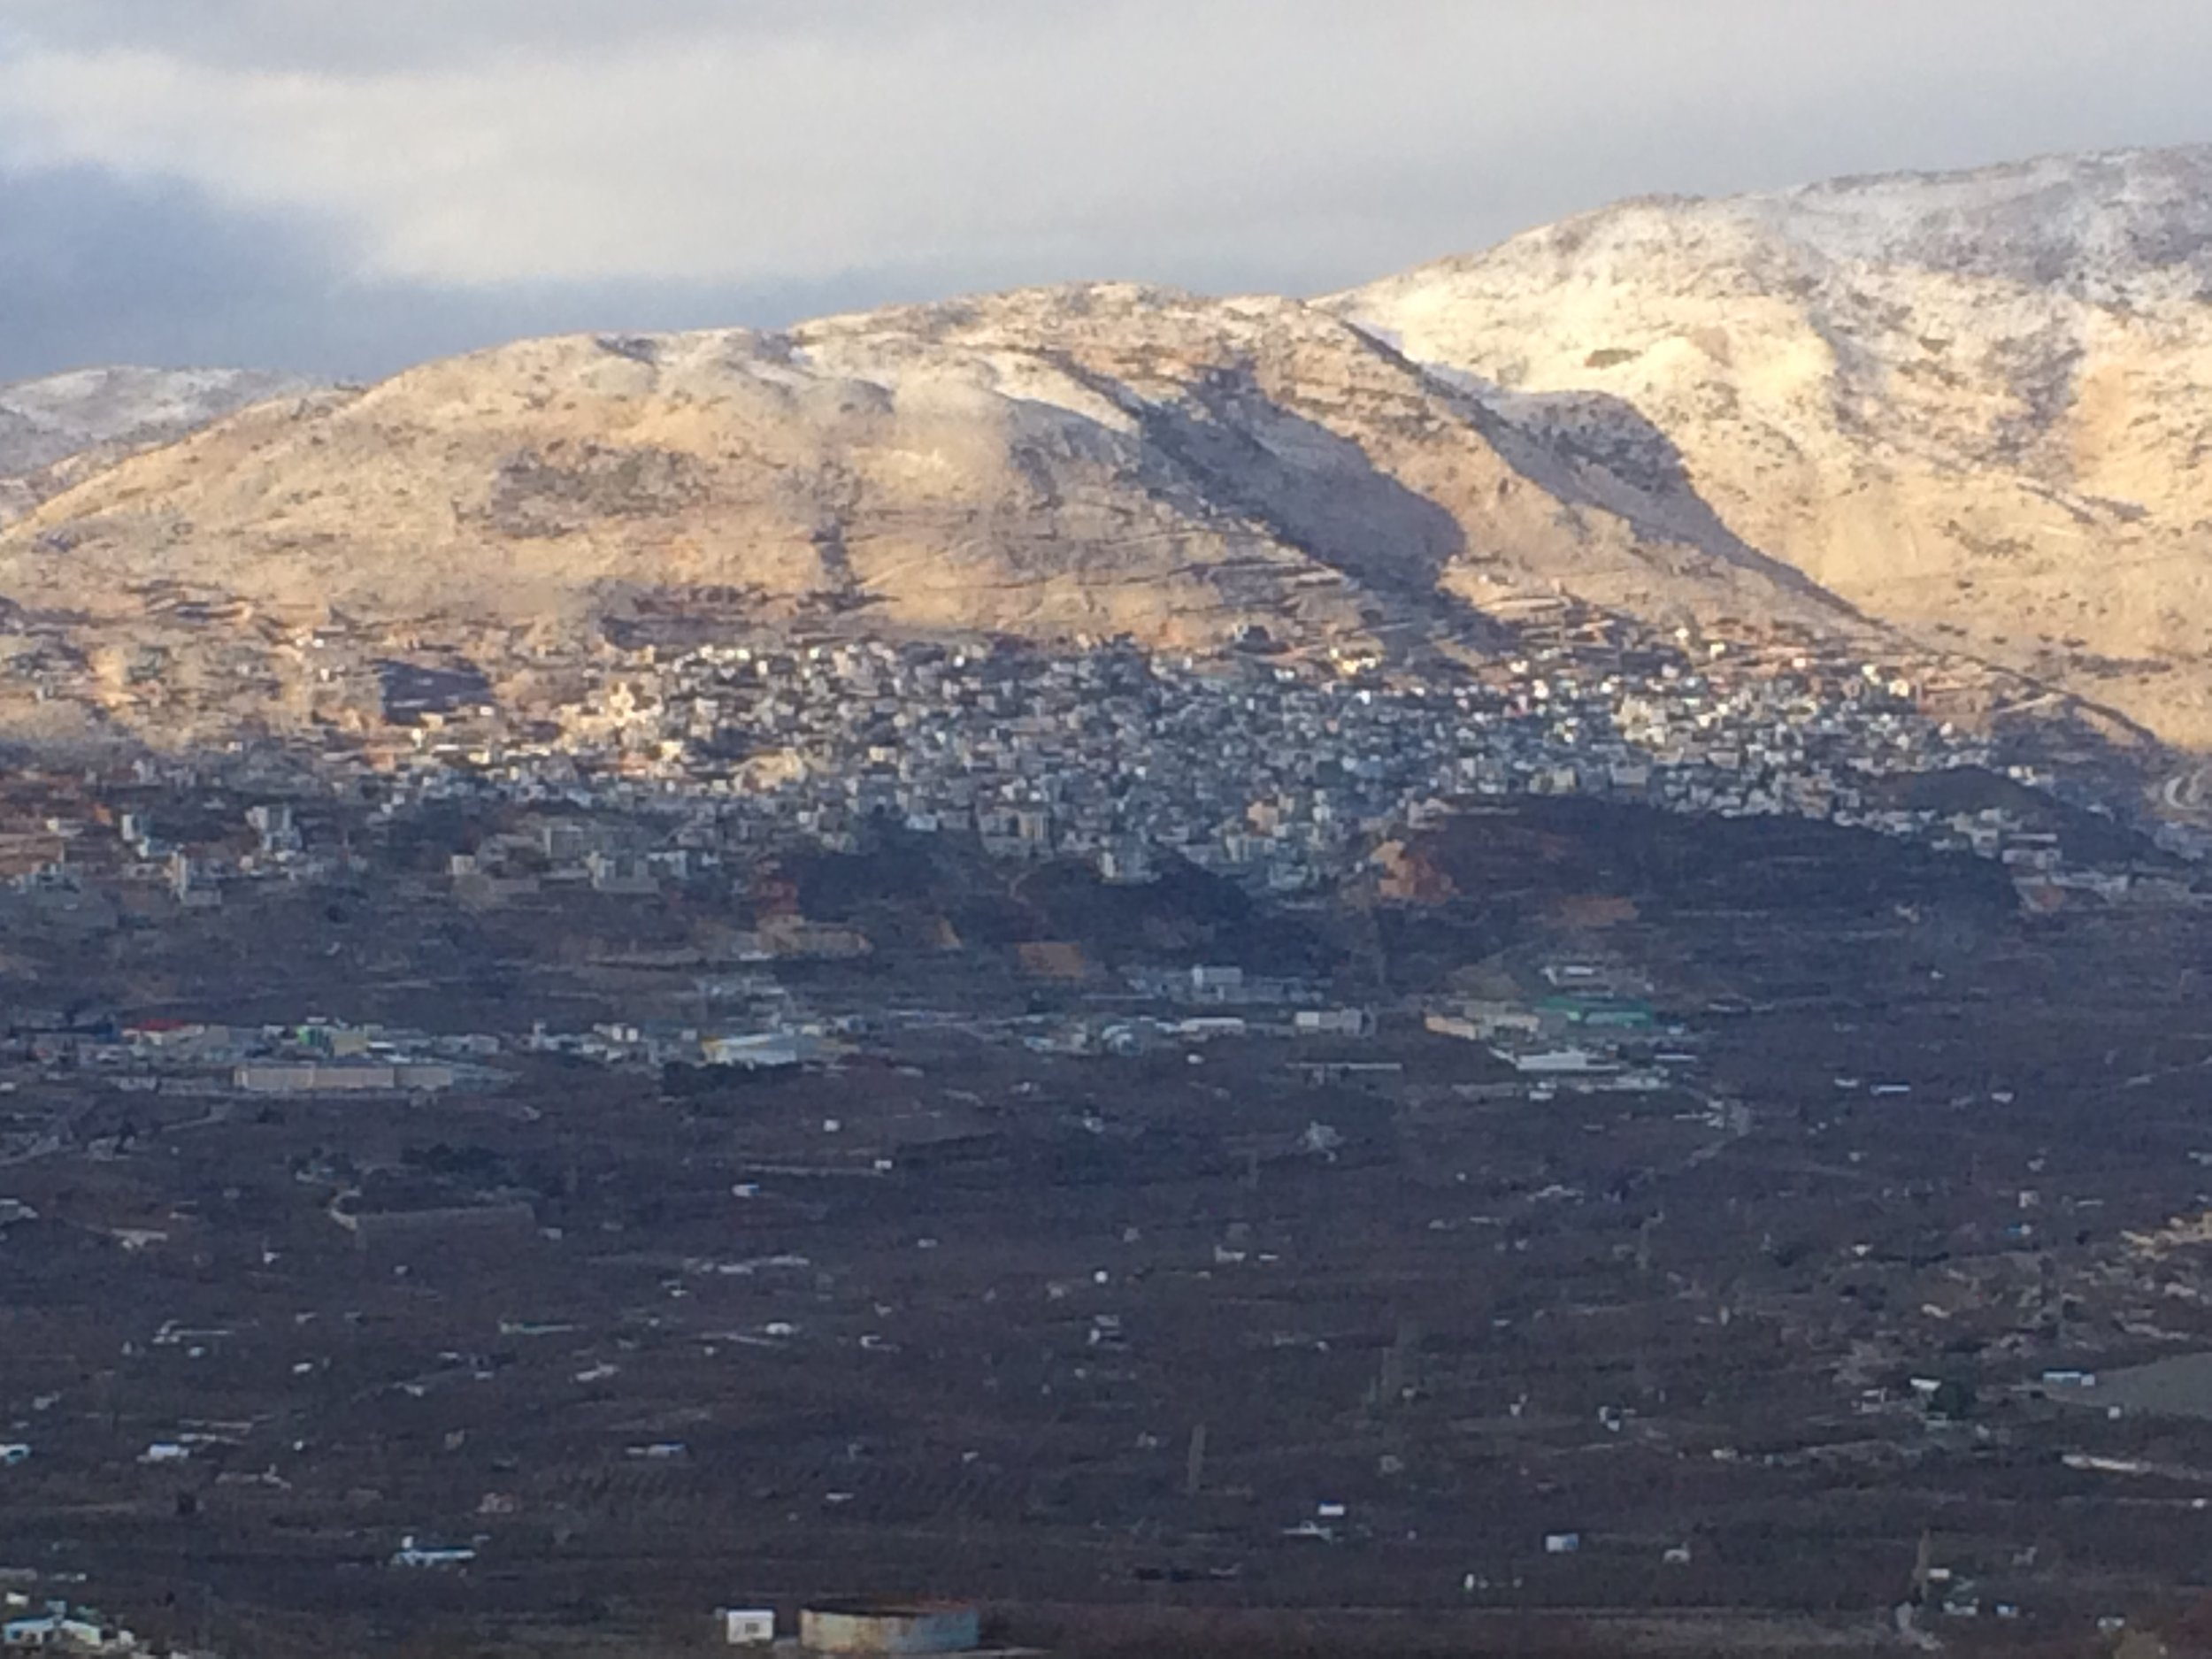 Majdal Shams sitting at the foot of Mount Hermon